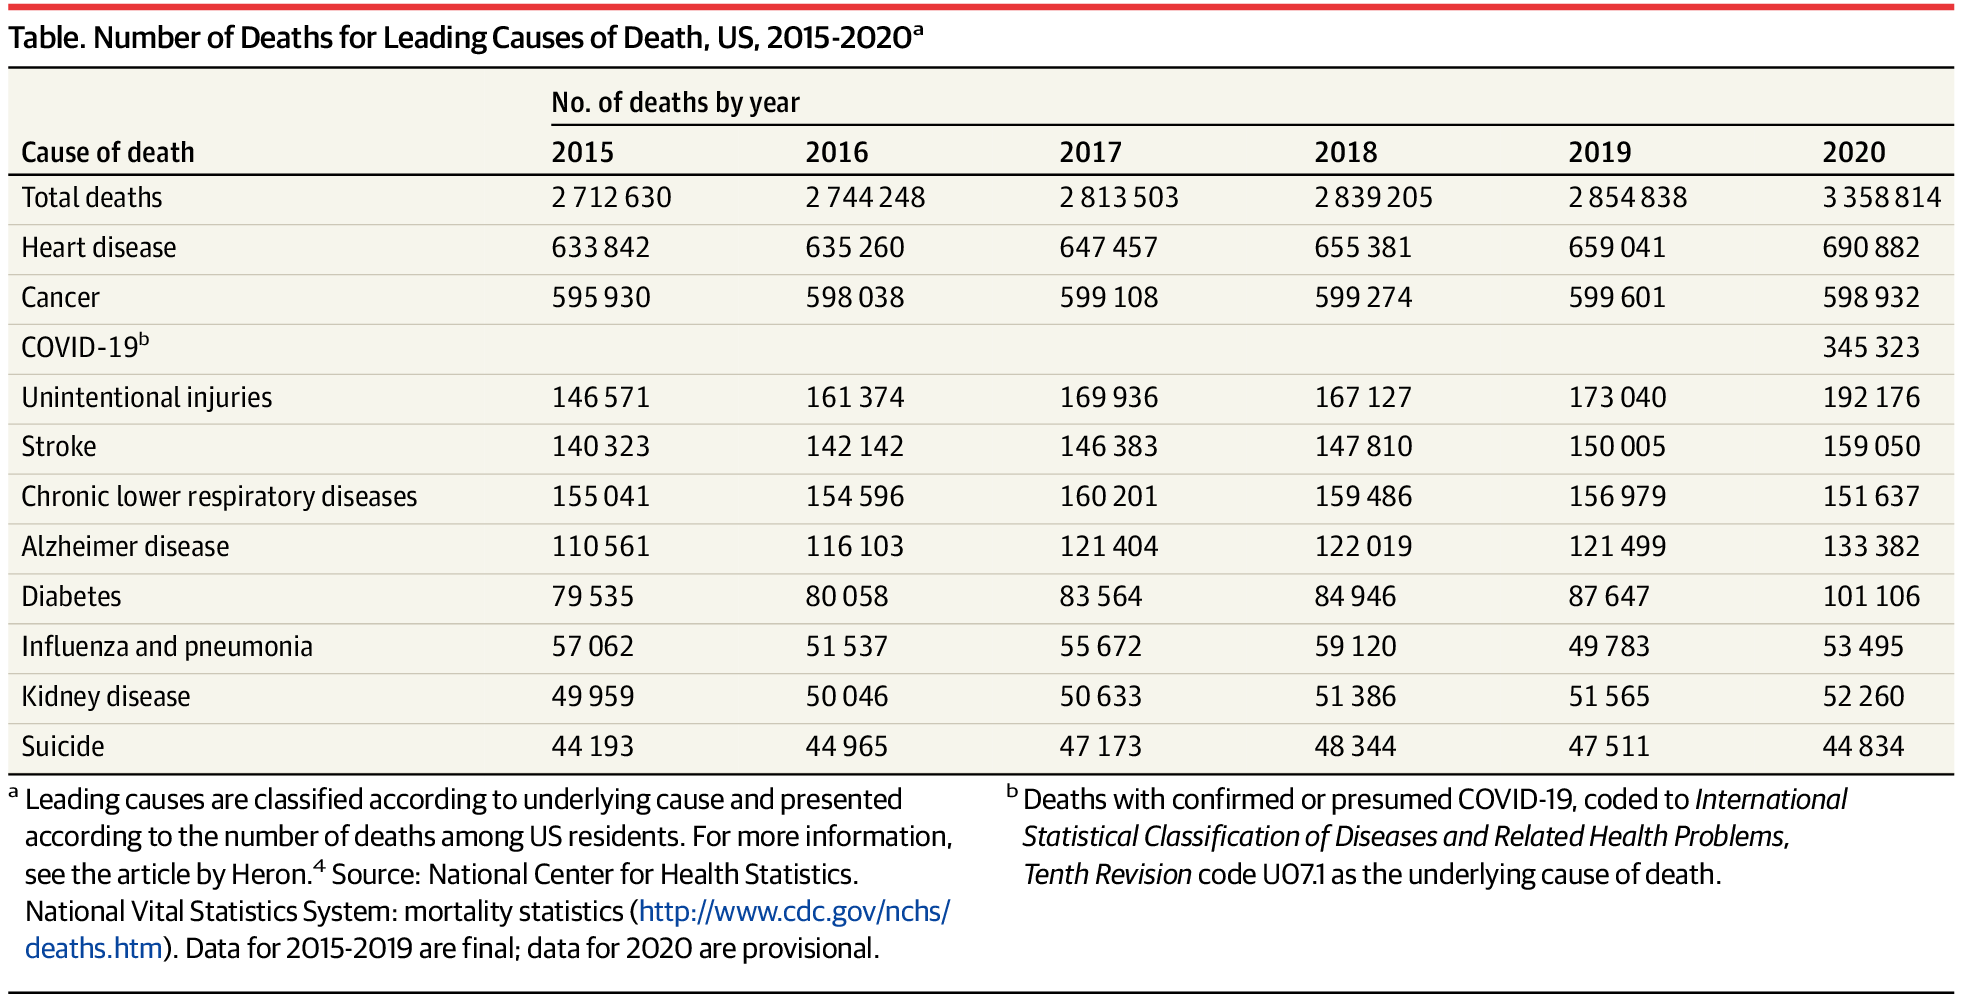 Number of Deaths for Leading Causes of Death, US, 2015-2020